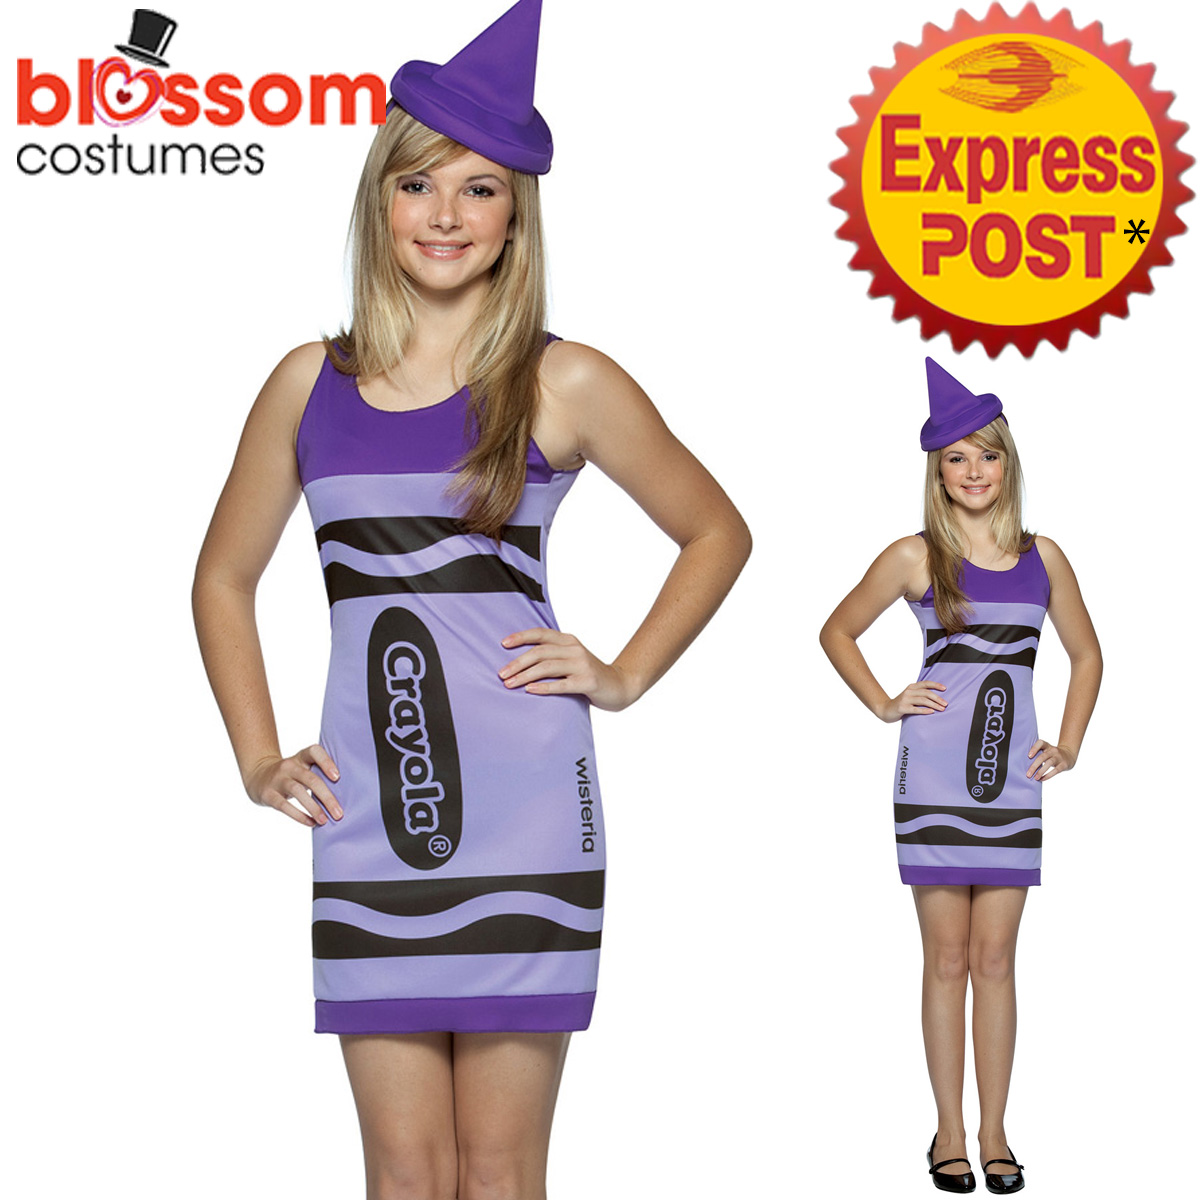 miranda-crayola-crayon-girls-teen-costume-bikini-teens-tiny